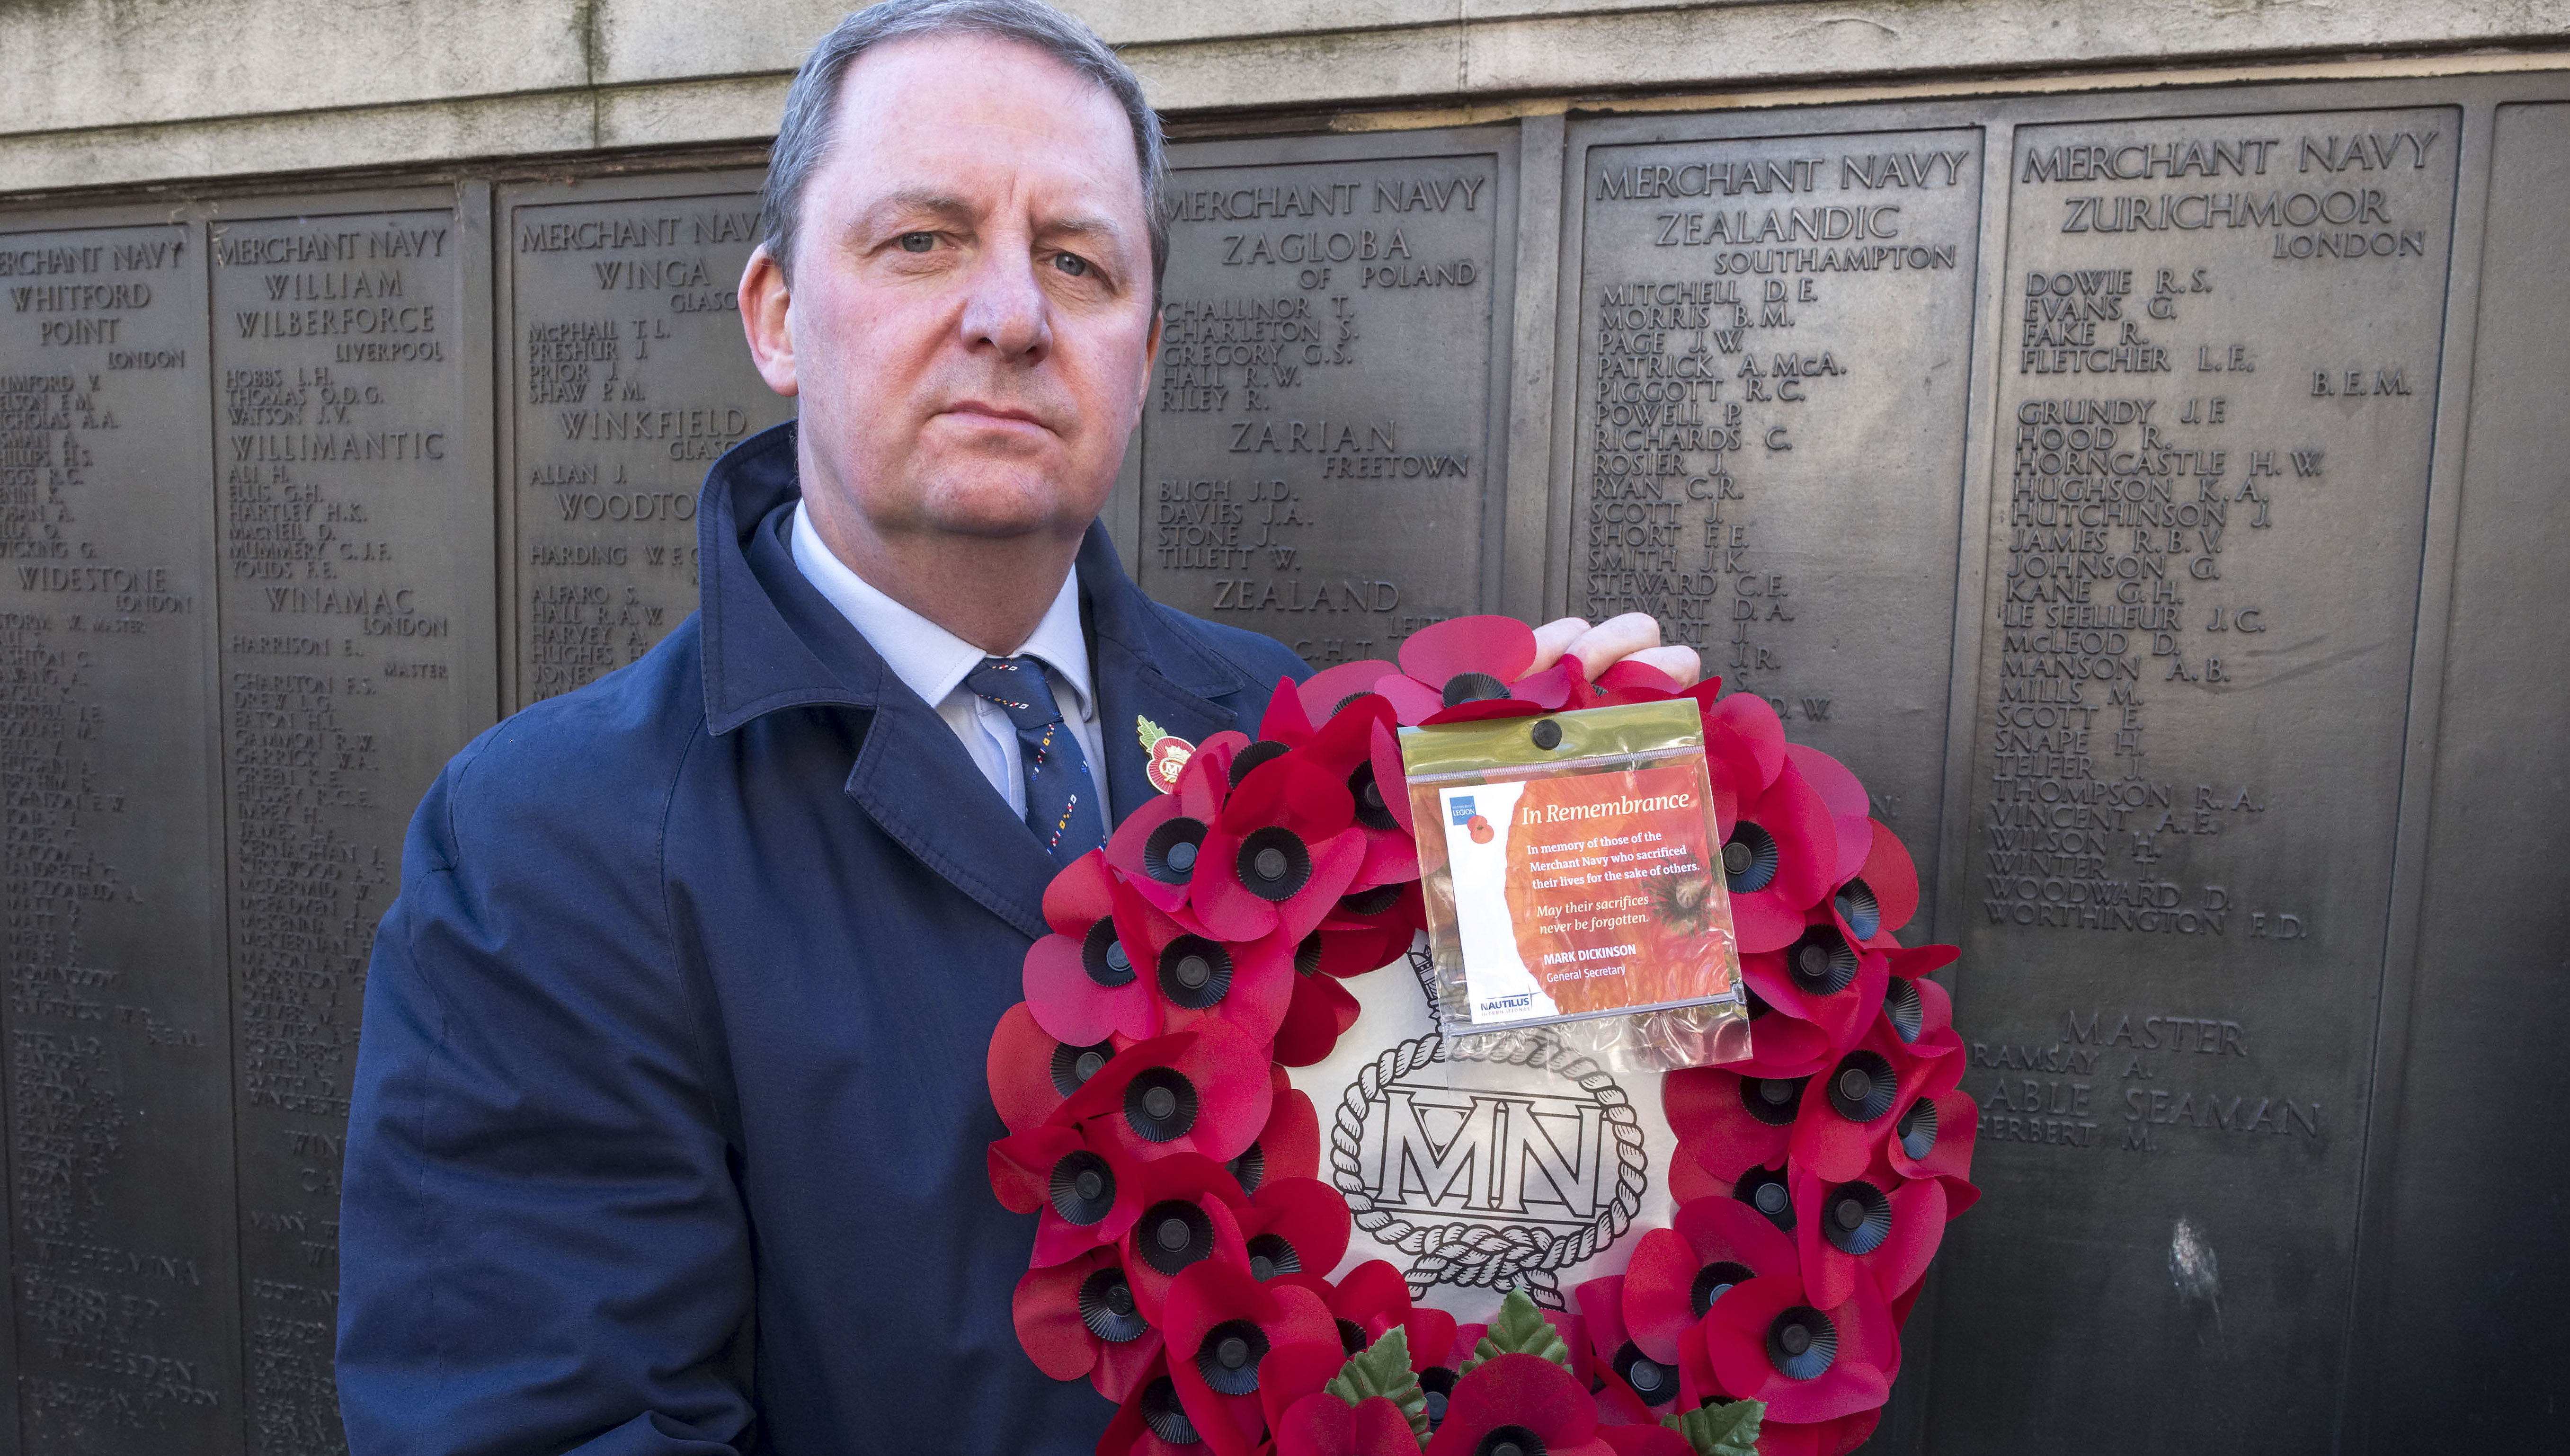 Nautilus news: Merchant Navy victims of war are honoured